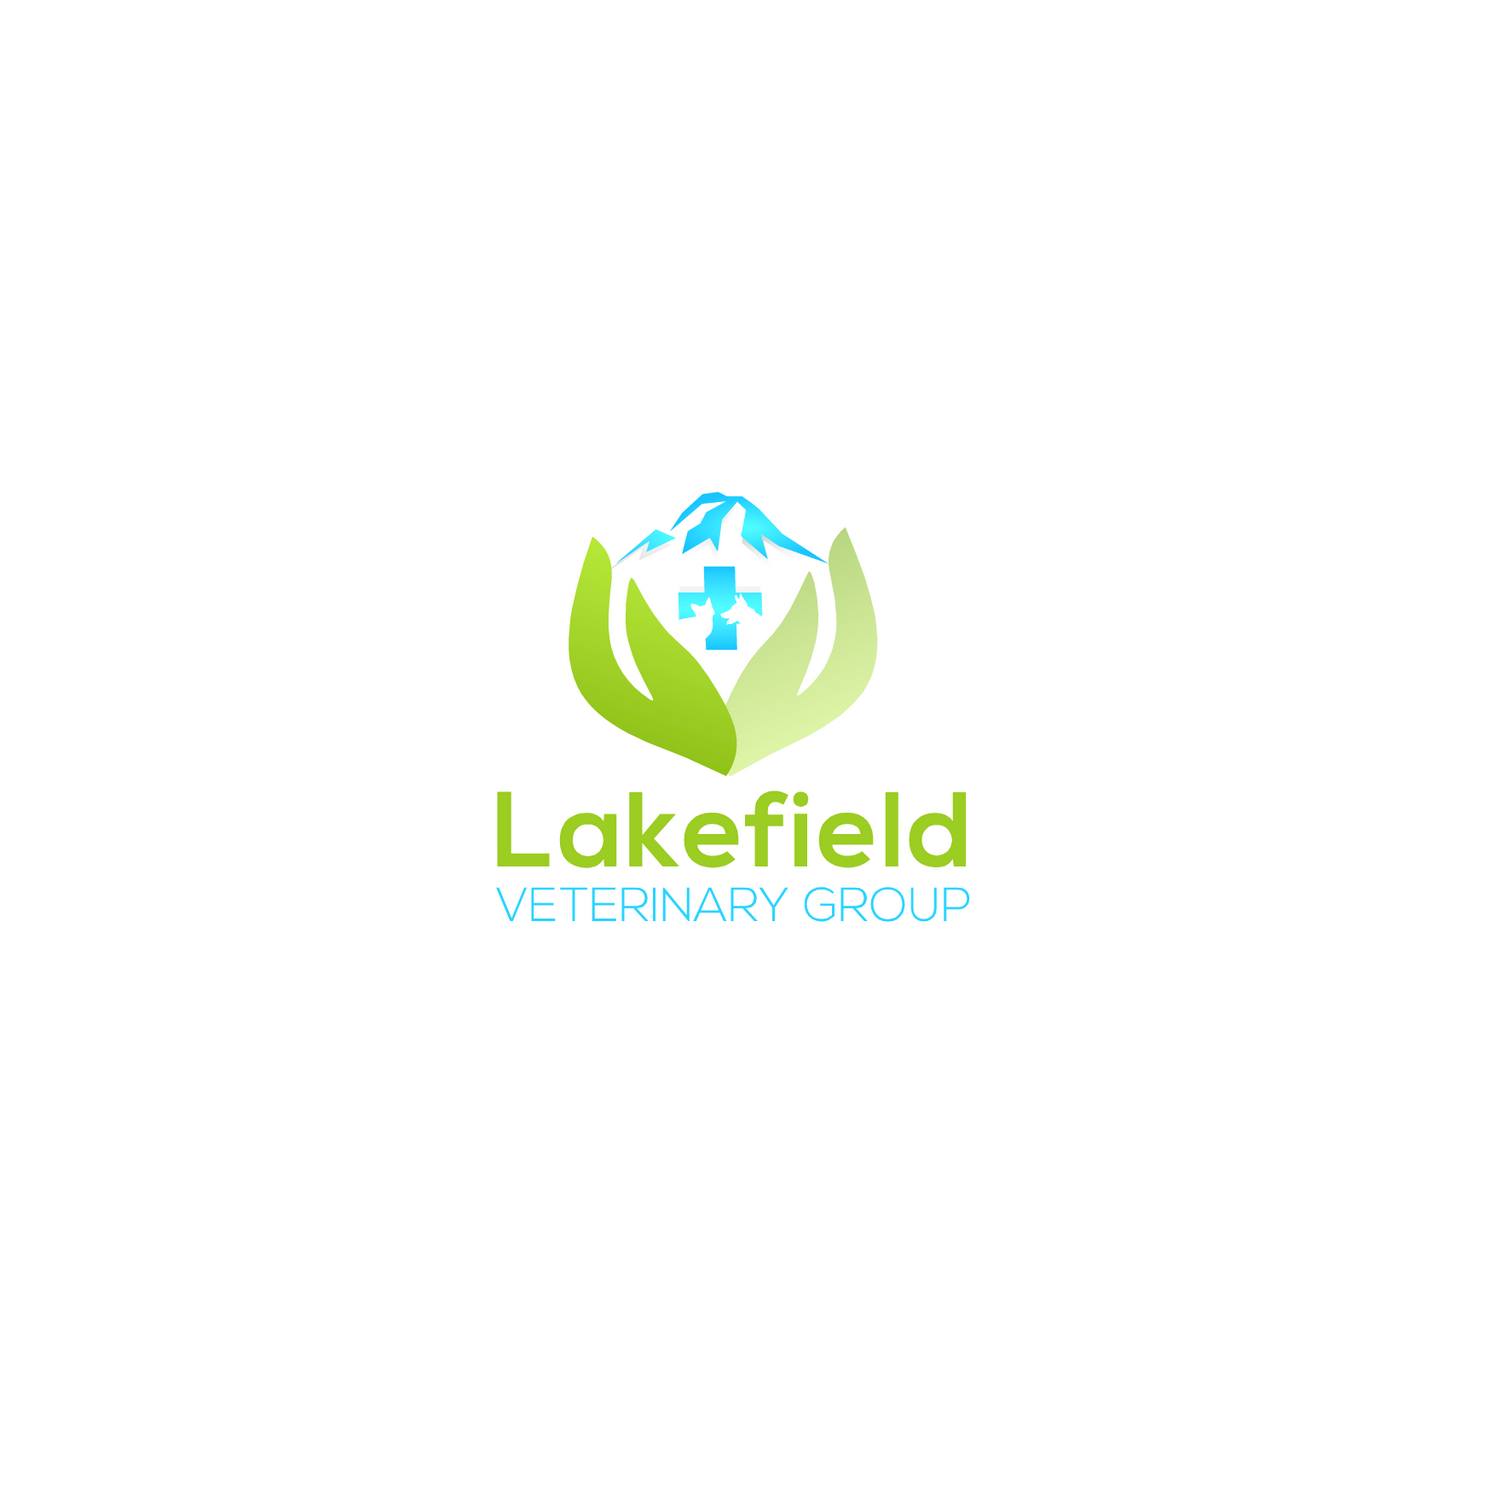 Logo Design by Sabeq Art - Entry No. 65 in the Logo Design Contest Inspiring Logo Design for Lakefield Veterinary Group.